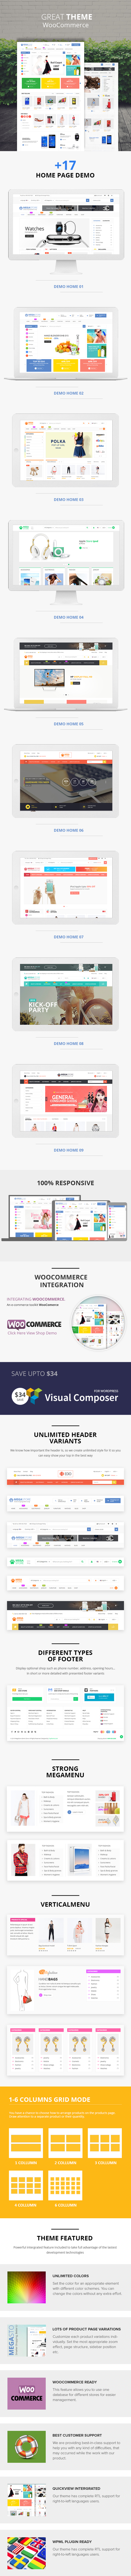 Mega Store - Super Market RTL Responsive WooCommerce WordPress Theme - 4